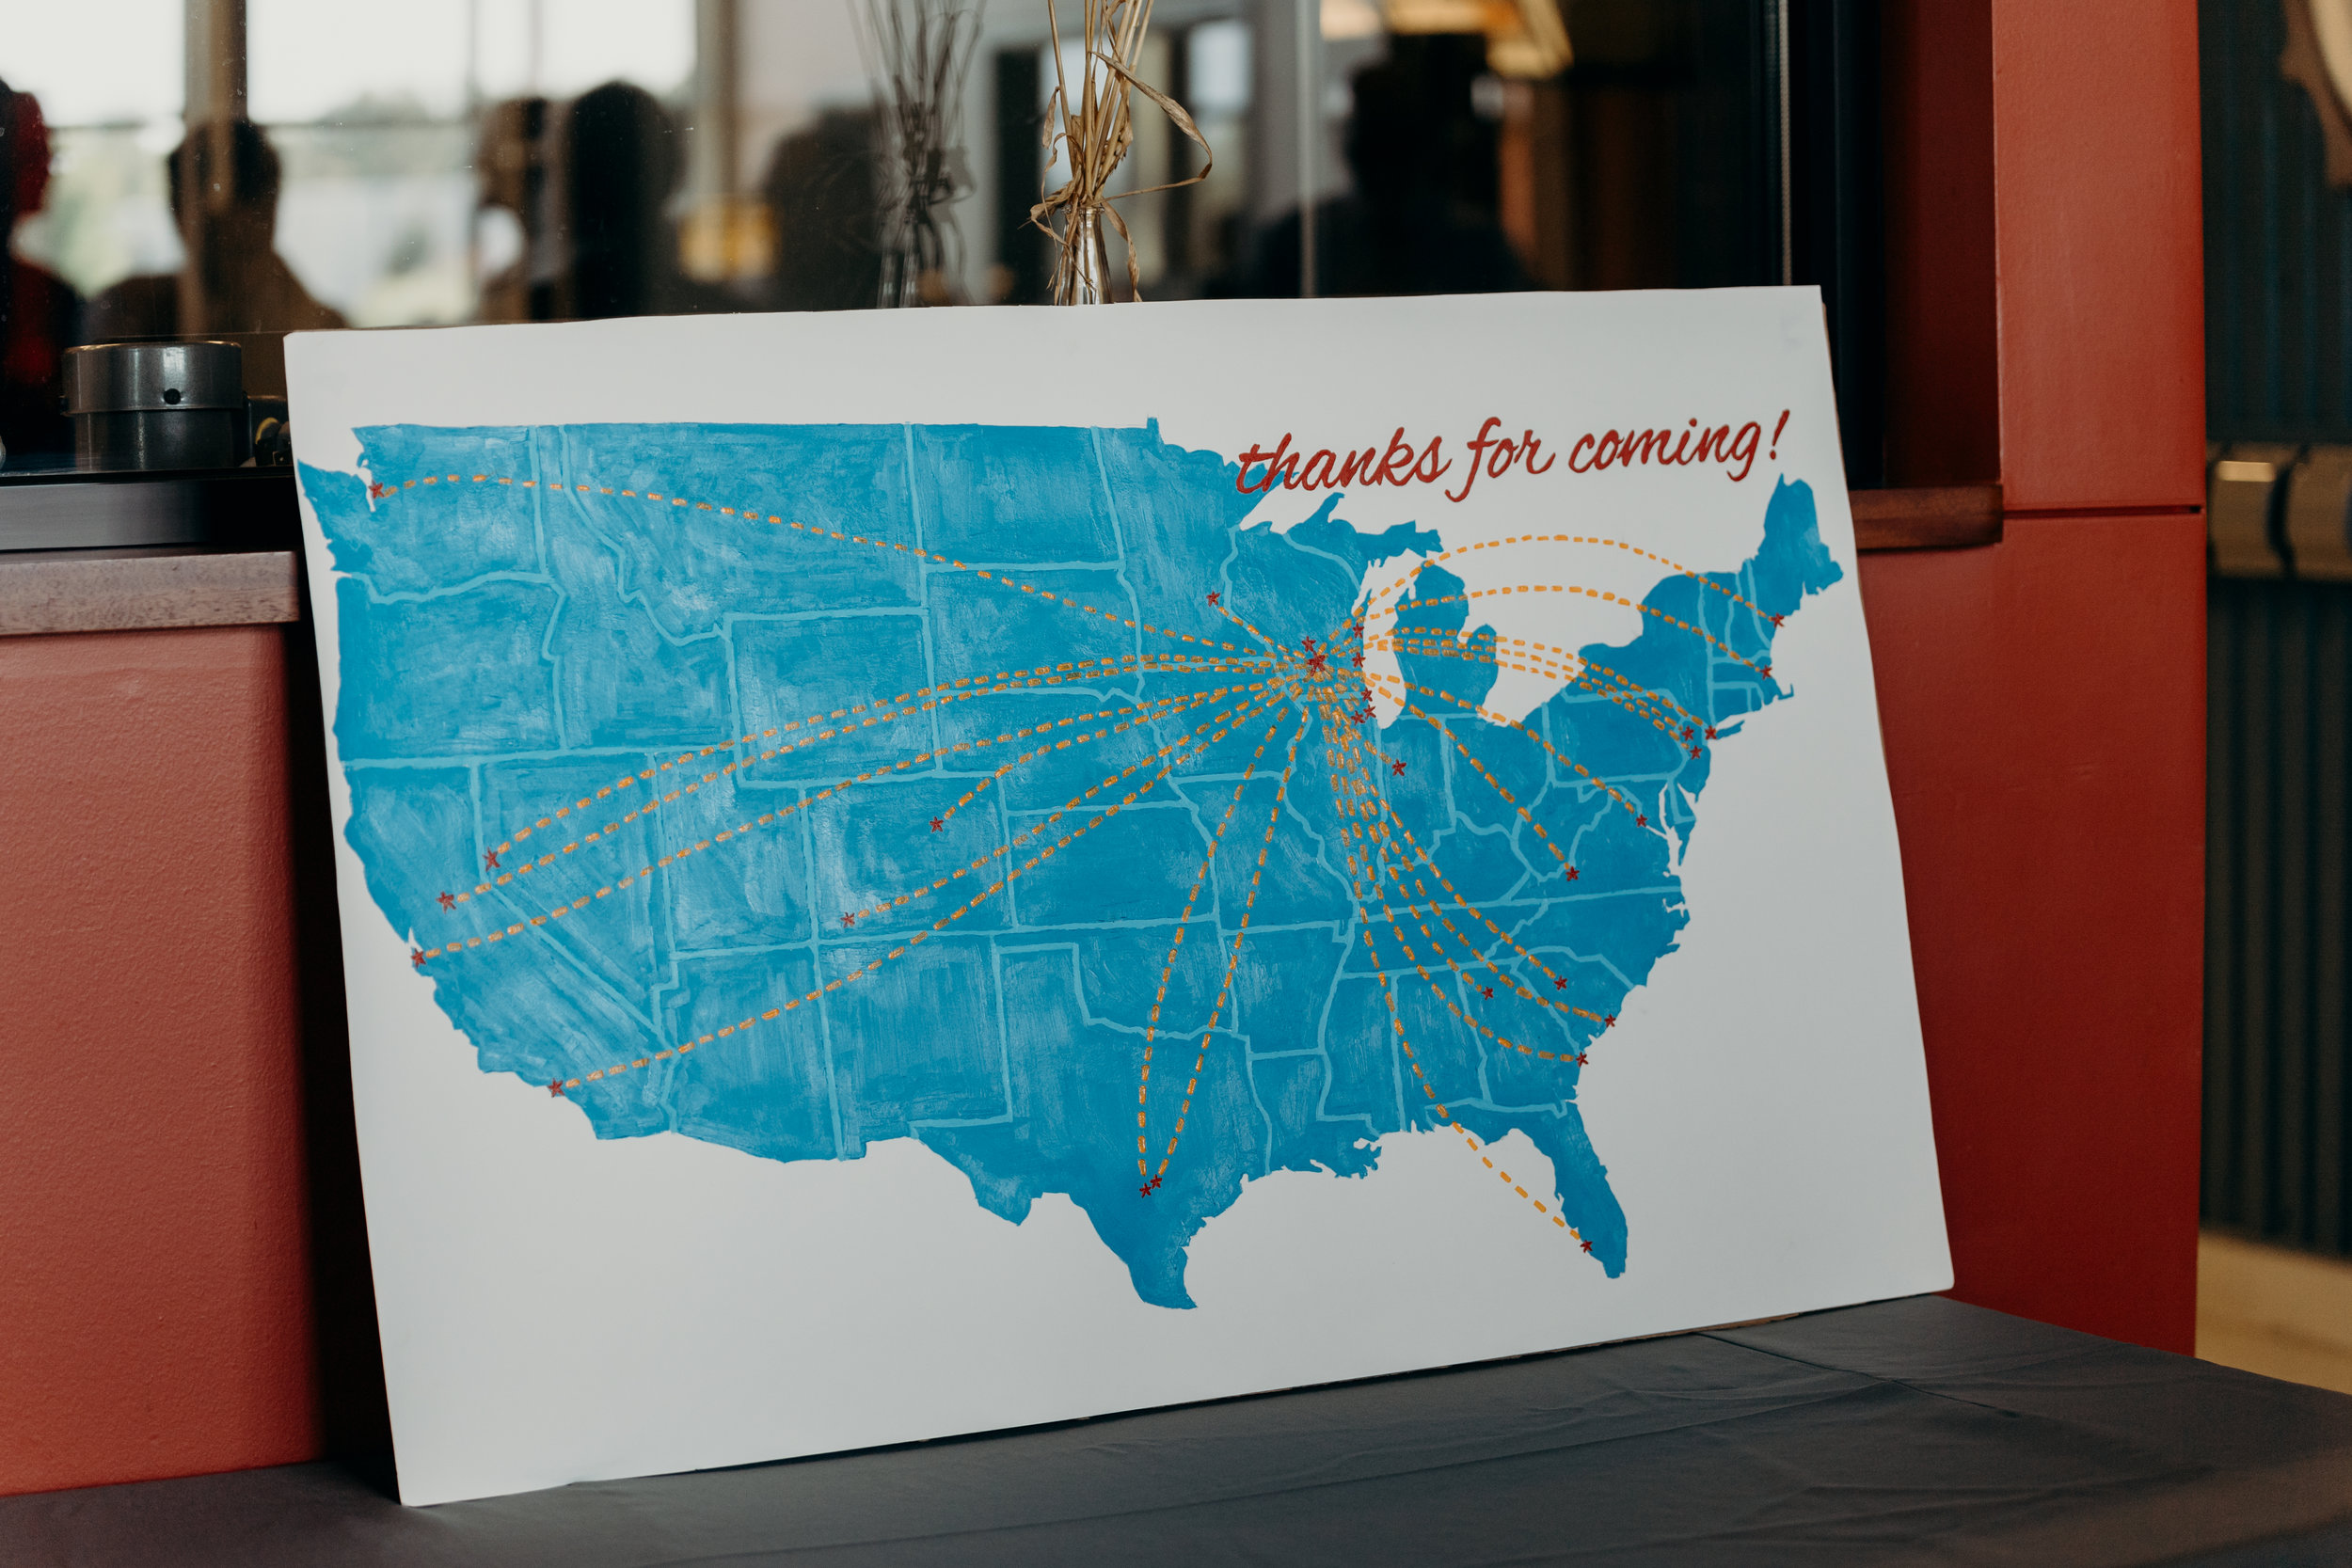 Map of the United States showing from where all of the wedding guests have traveled.